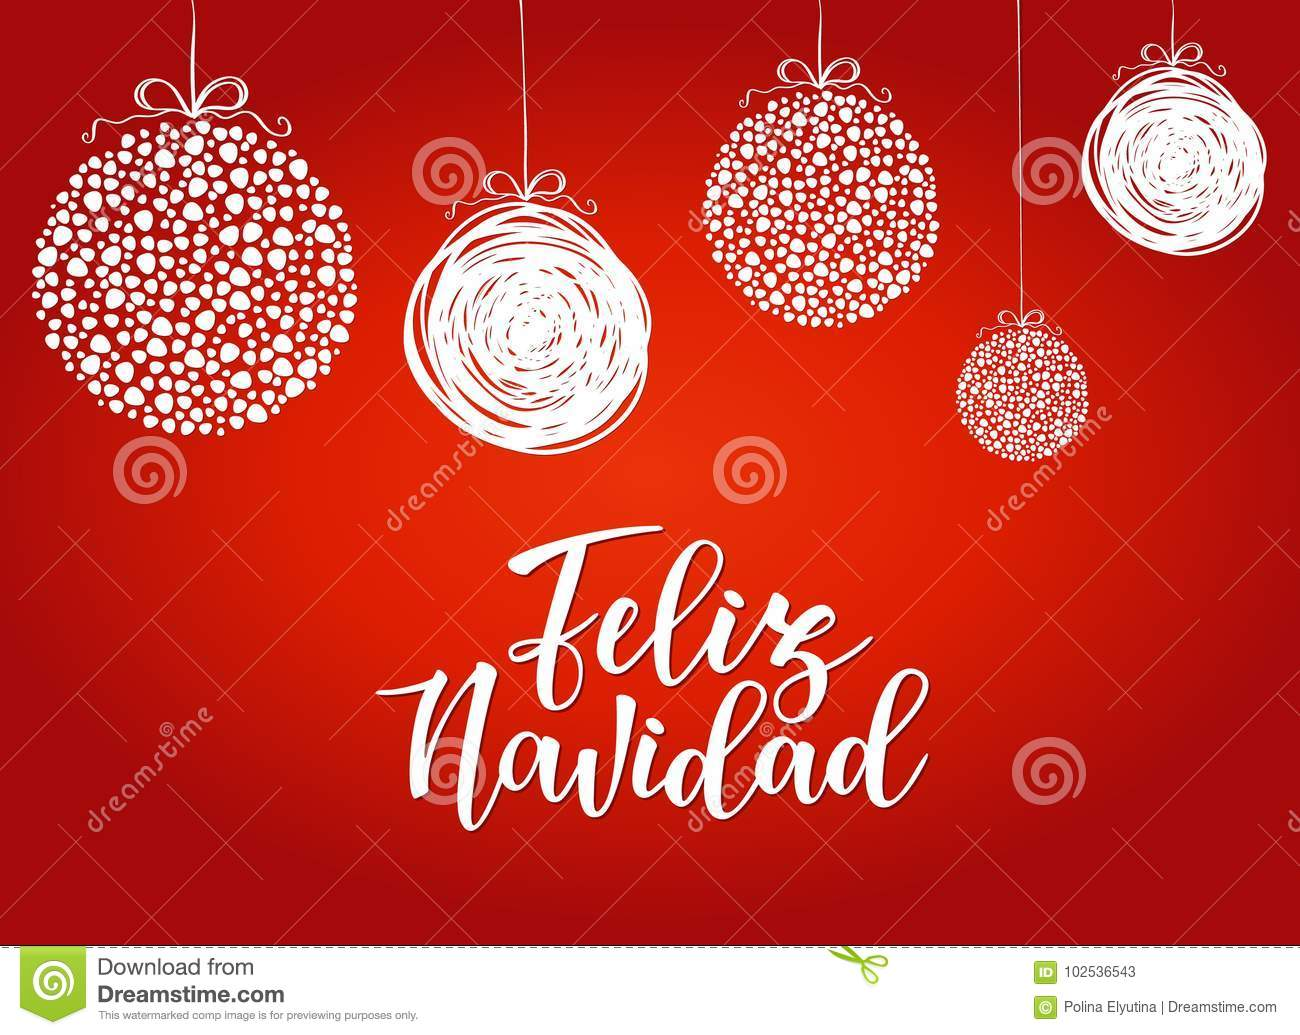 Religious Christmas Greetings Spanish Topsimages